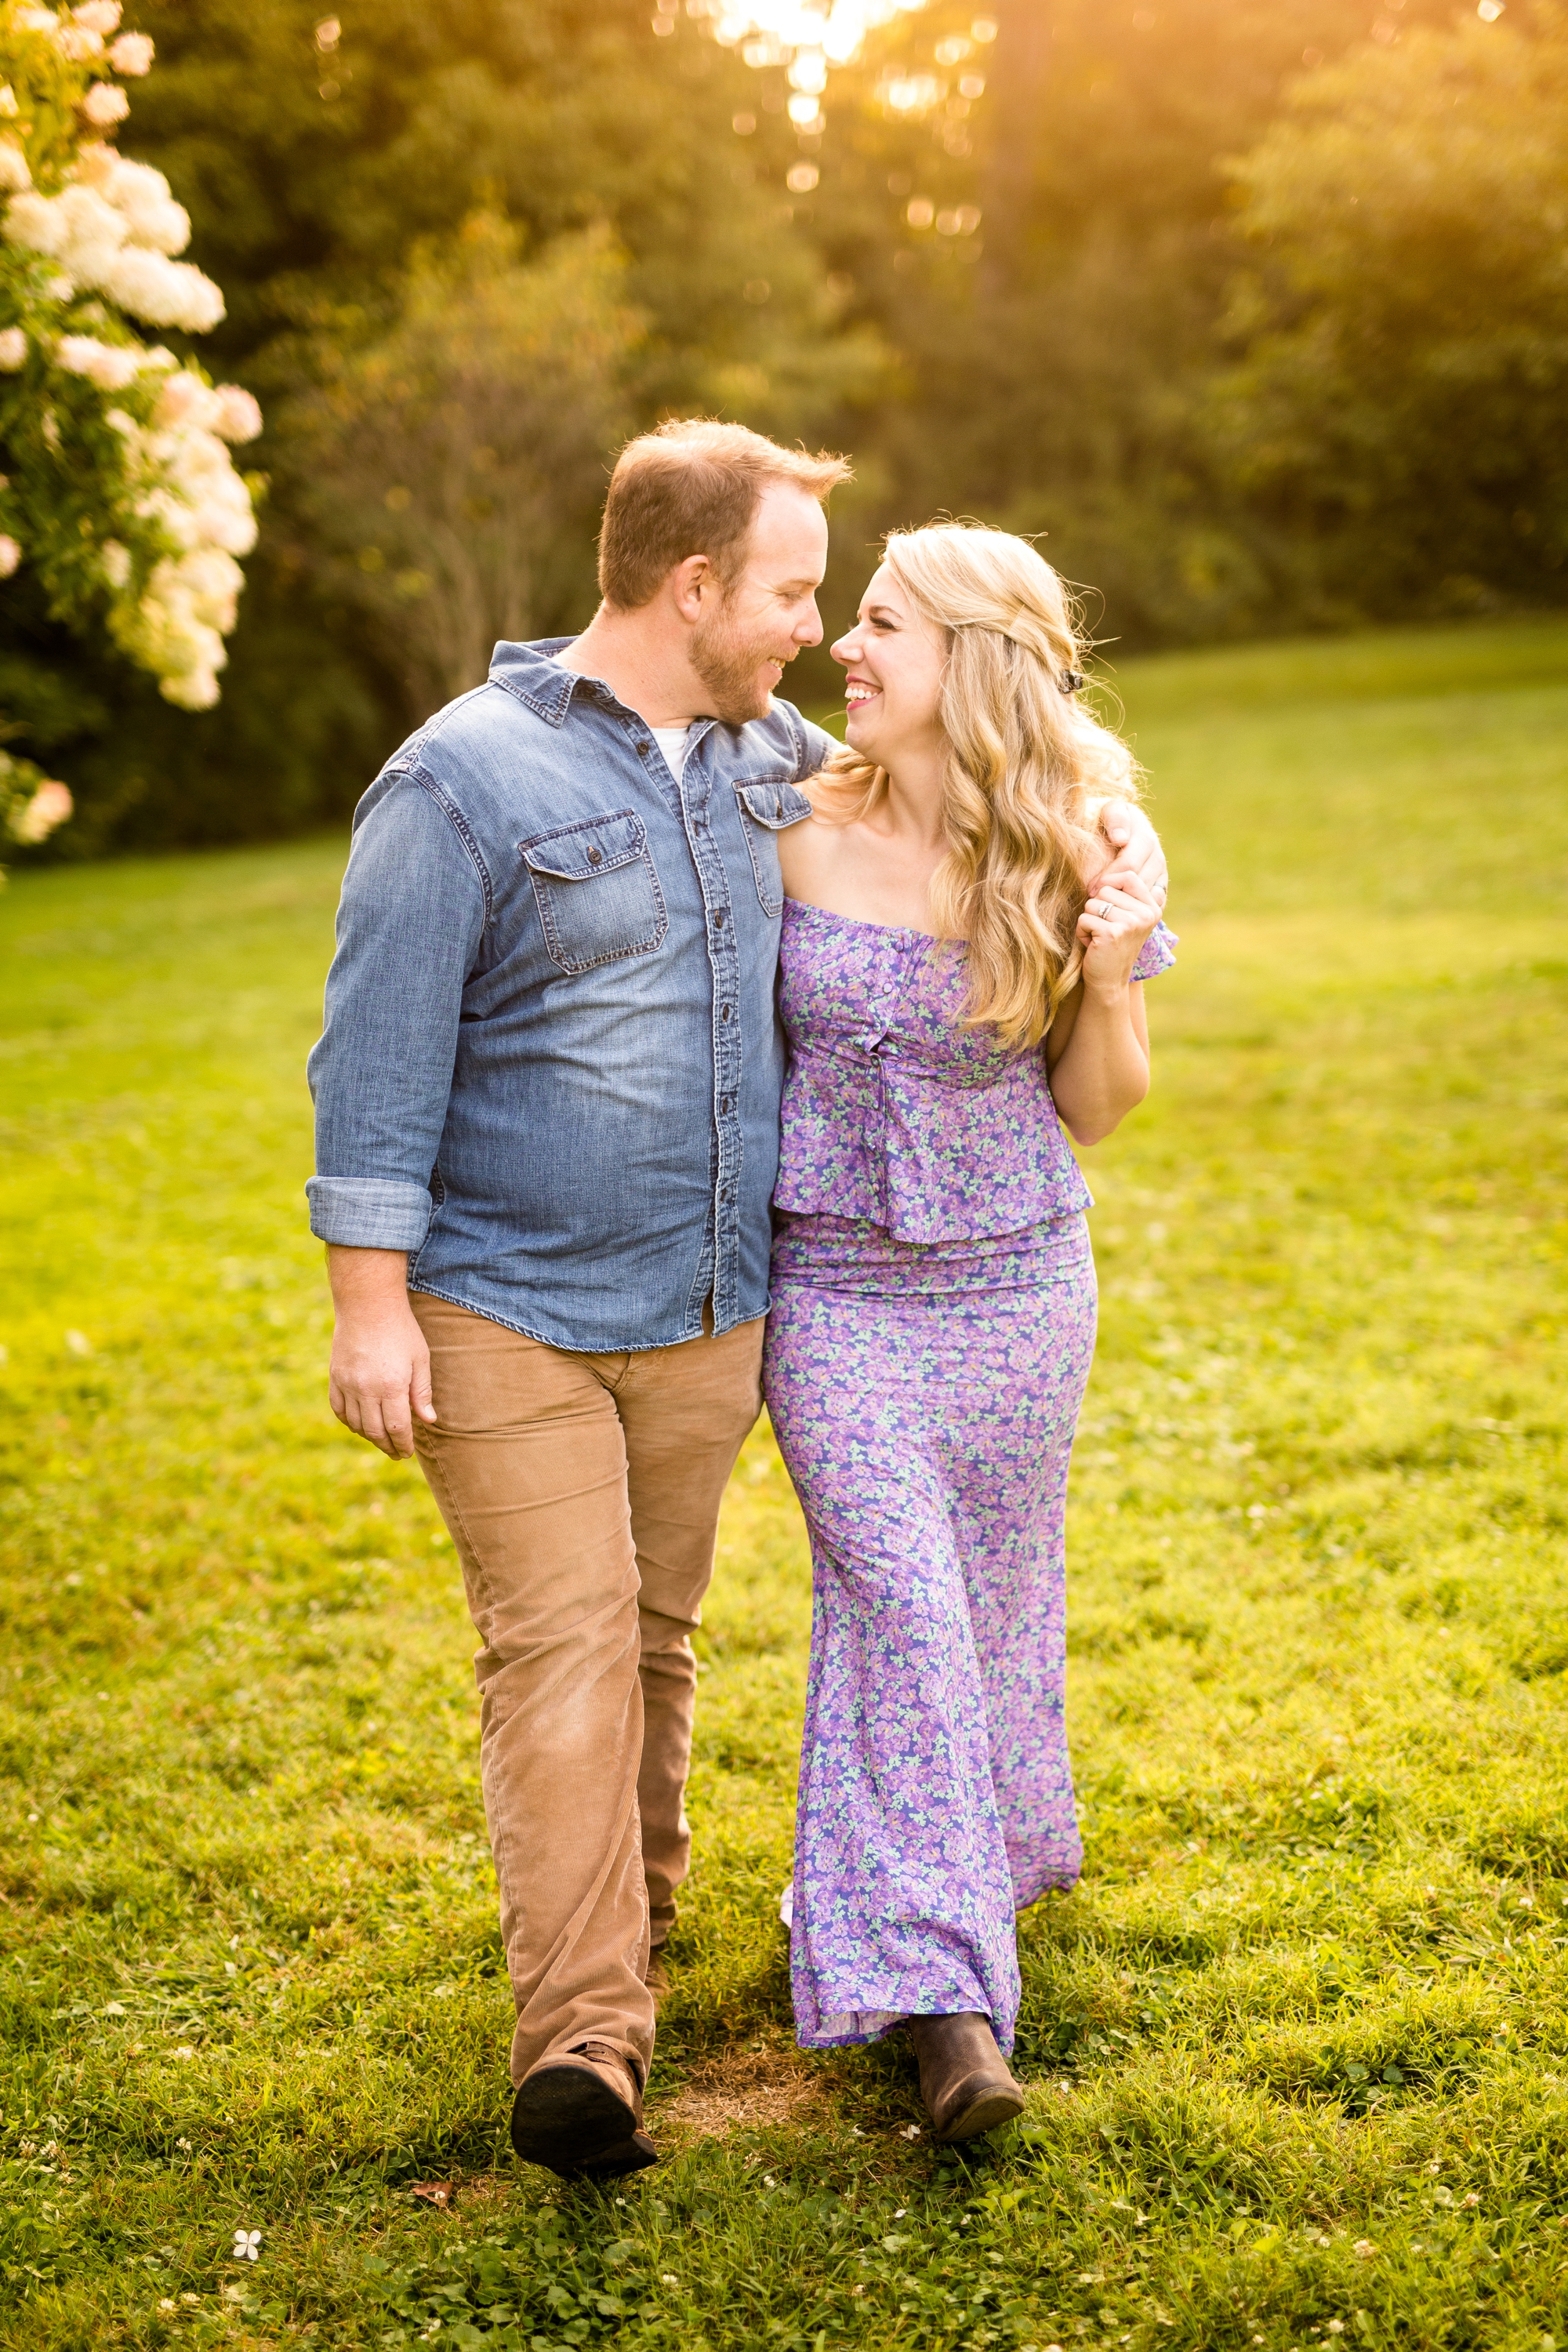 Spring Summer Outfit Inspiration For Engagement Photos Jenna Hidinger Photography